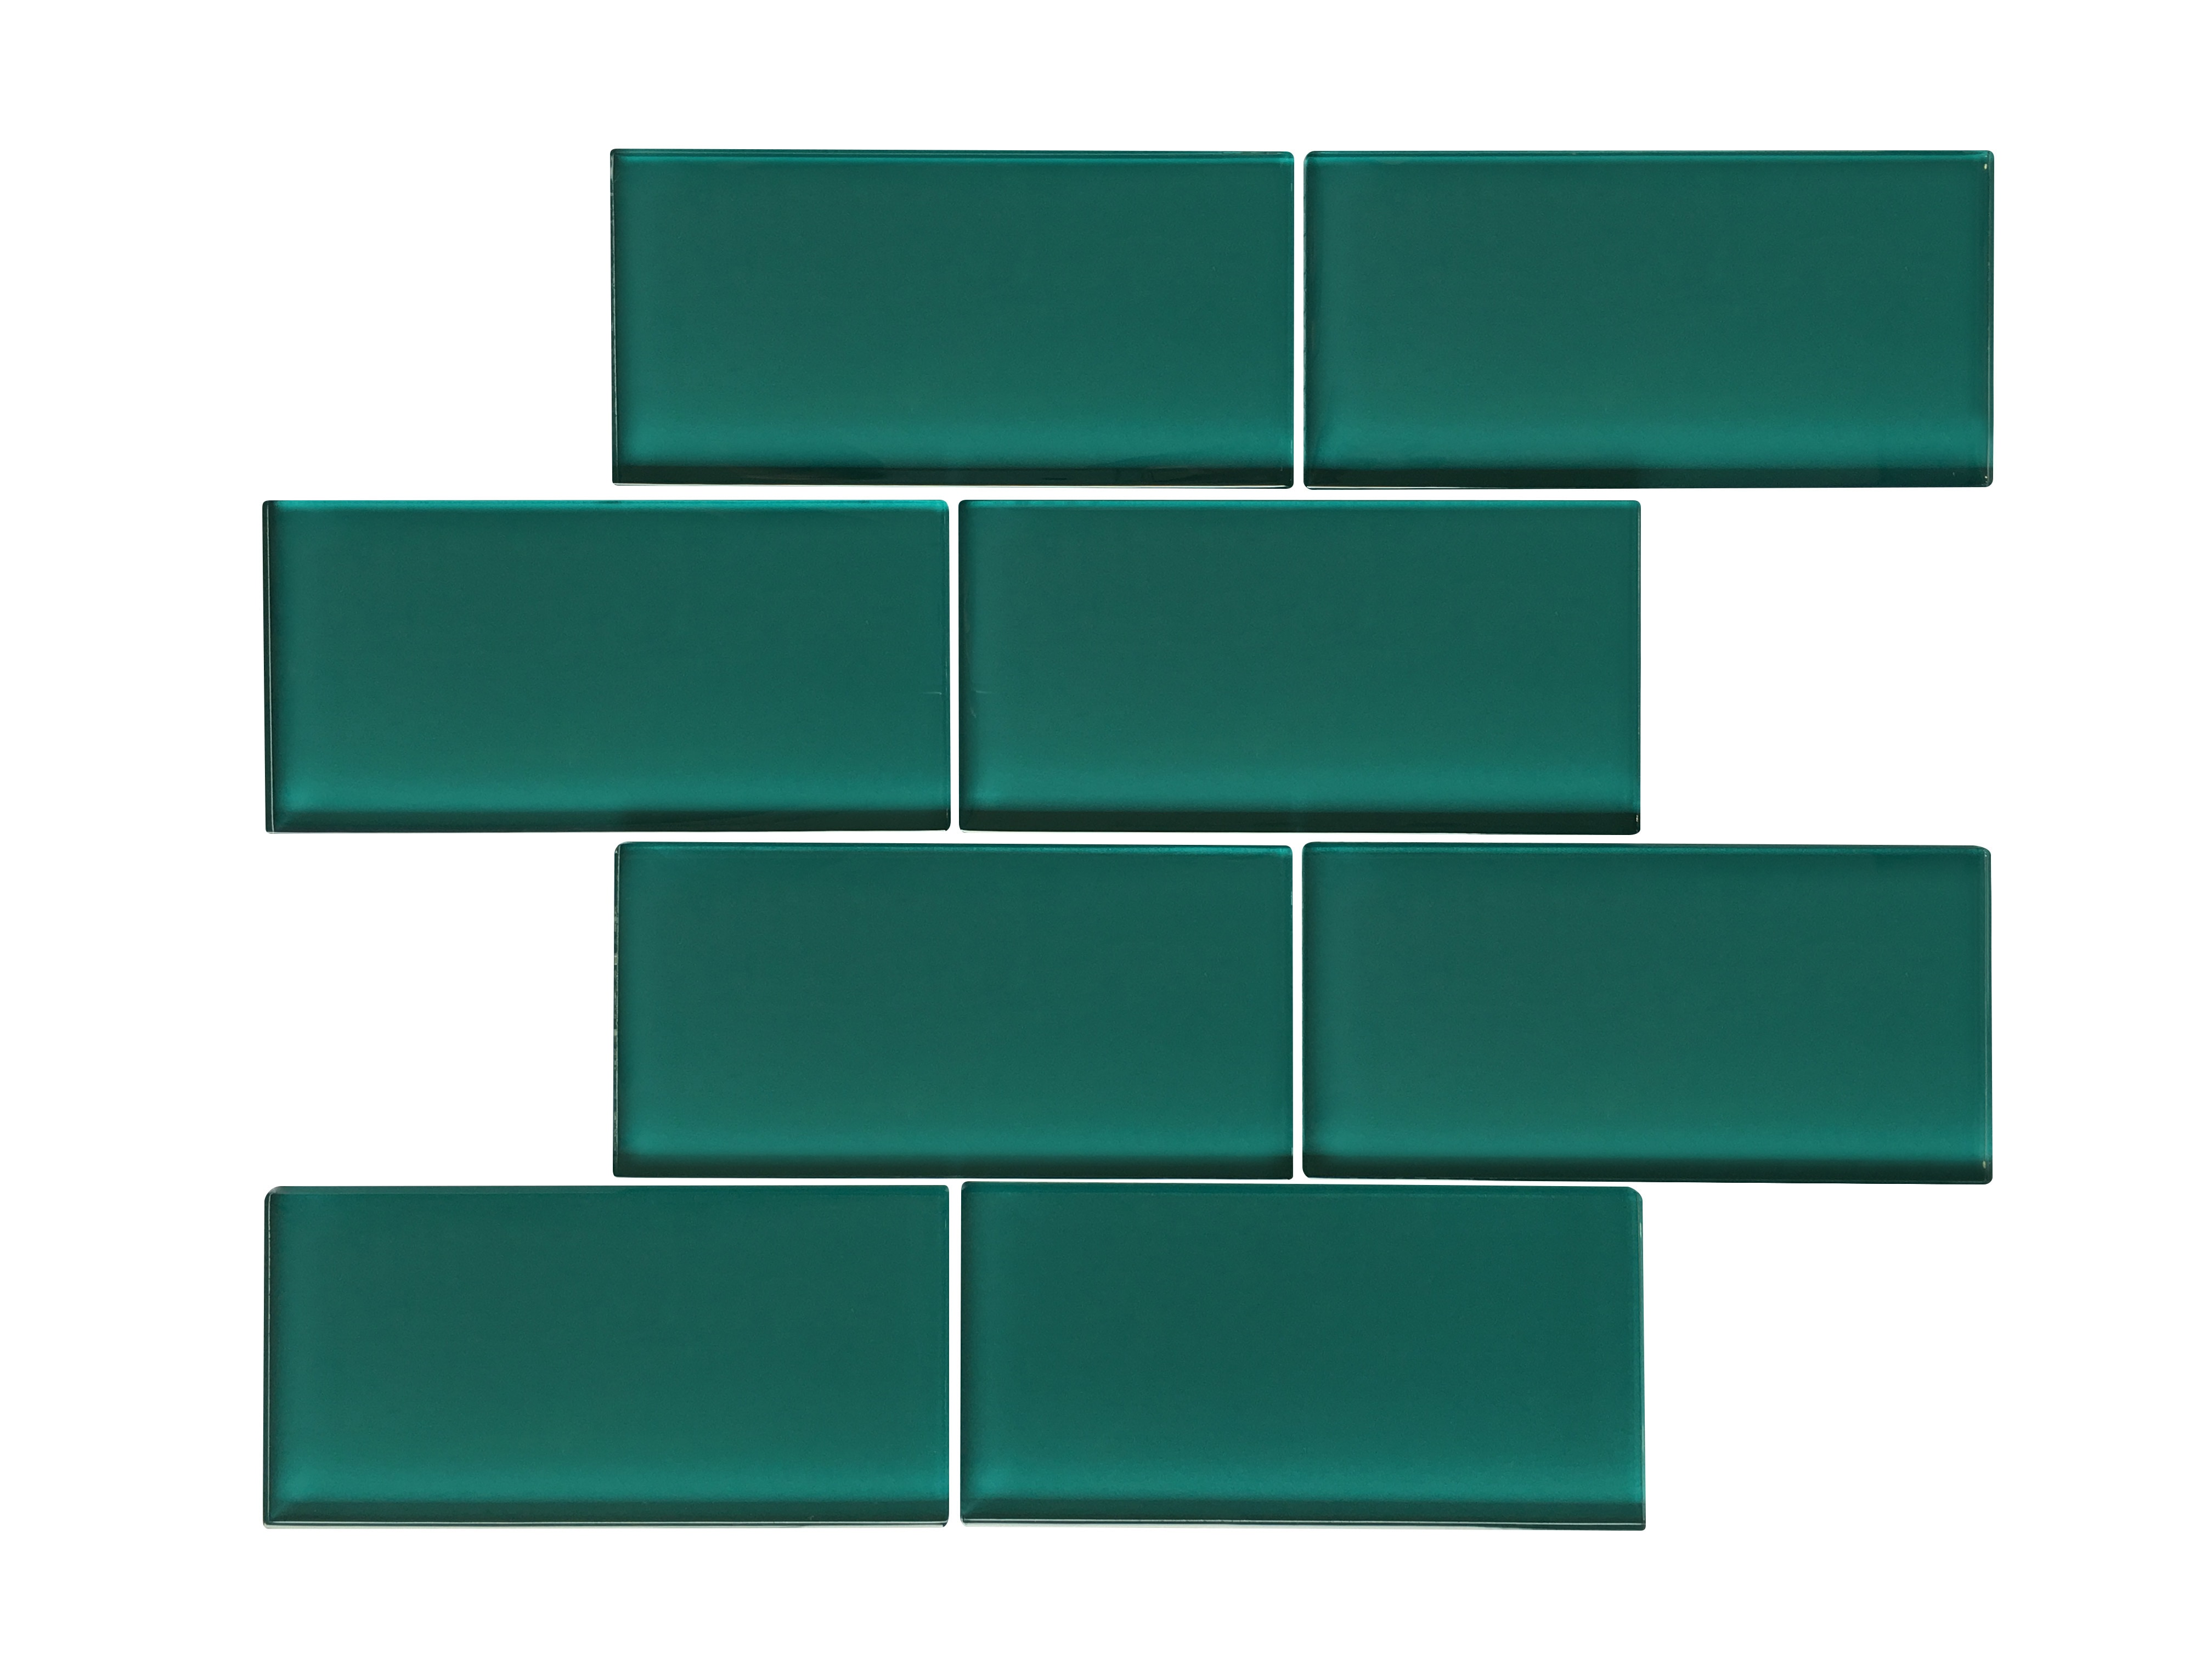 """Glass Mosaic / 16 x 12 x 0.16 inches / Glossy Large 3"""" X 6"""" X 4mm Glass Subway Mosaic Tile In Dark Teal 0"""